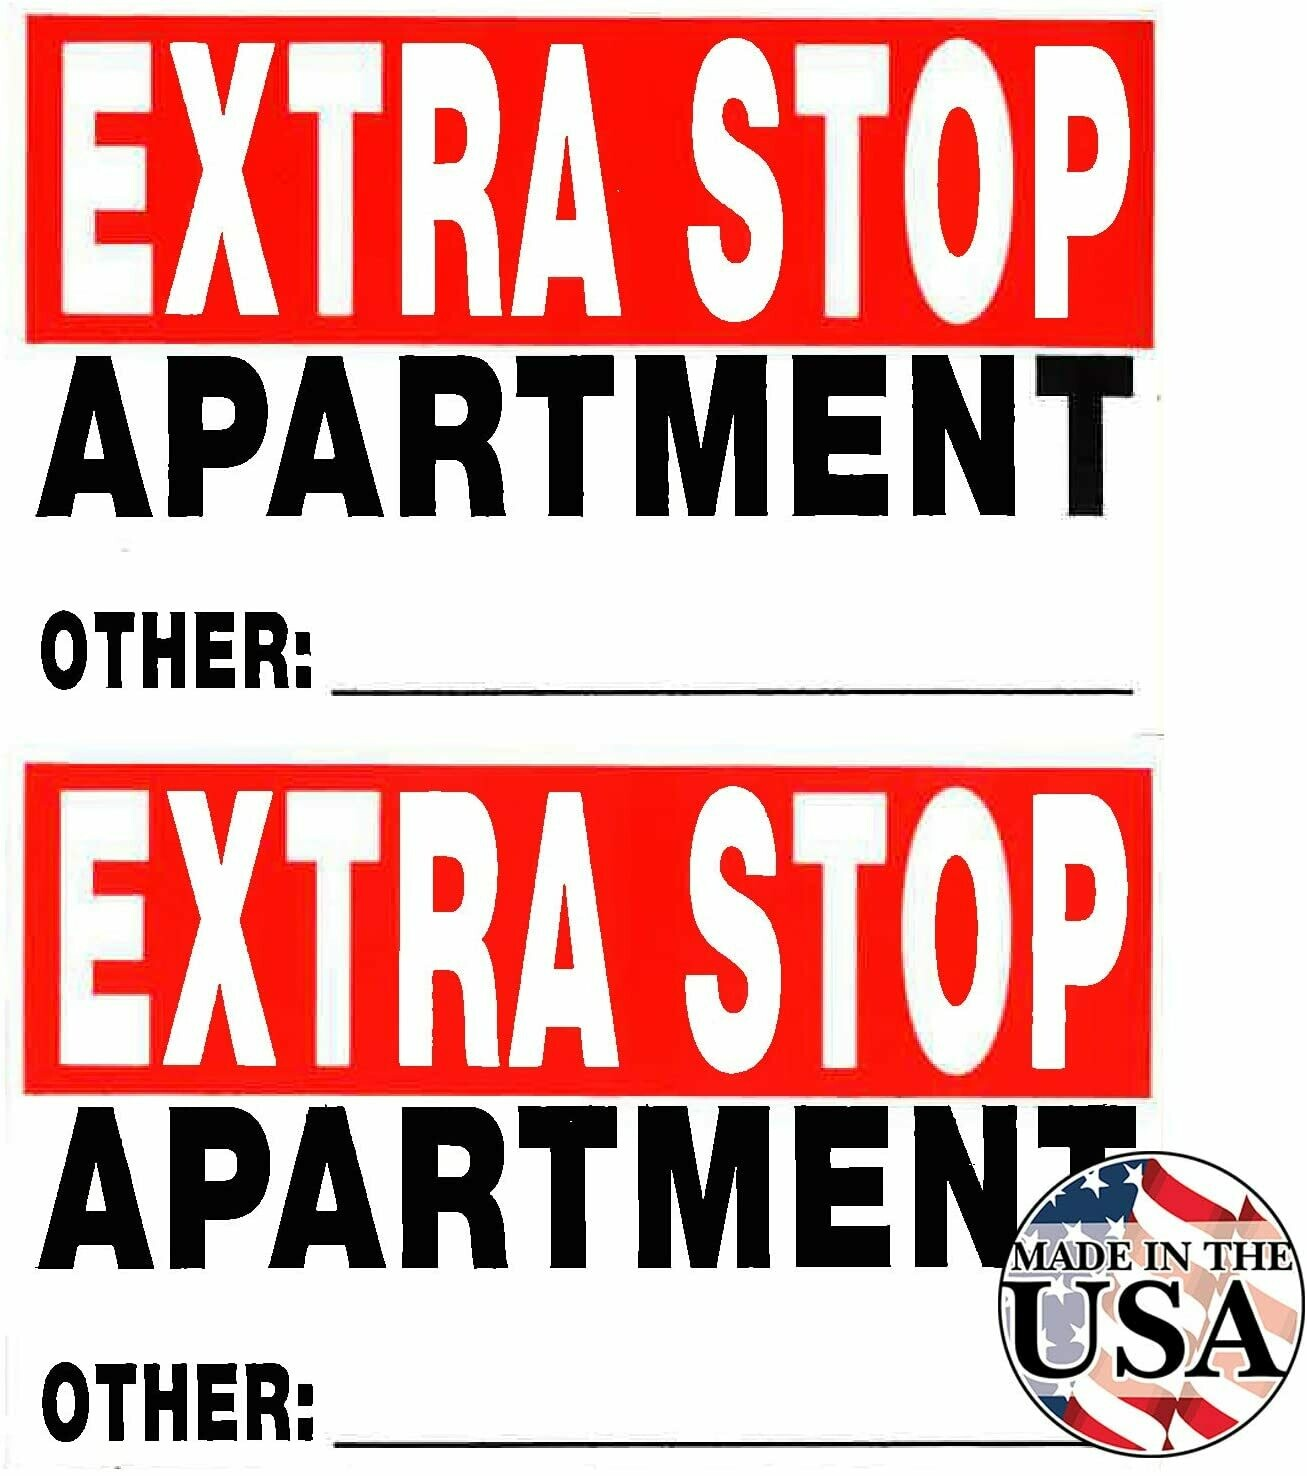 Extra Stop Apartment - 50 Count